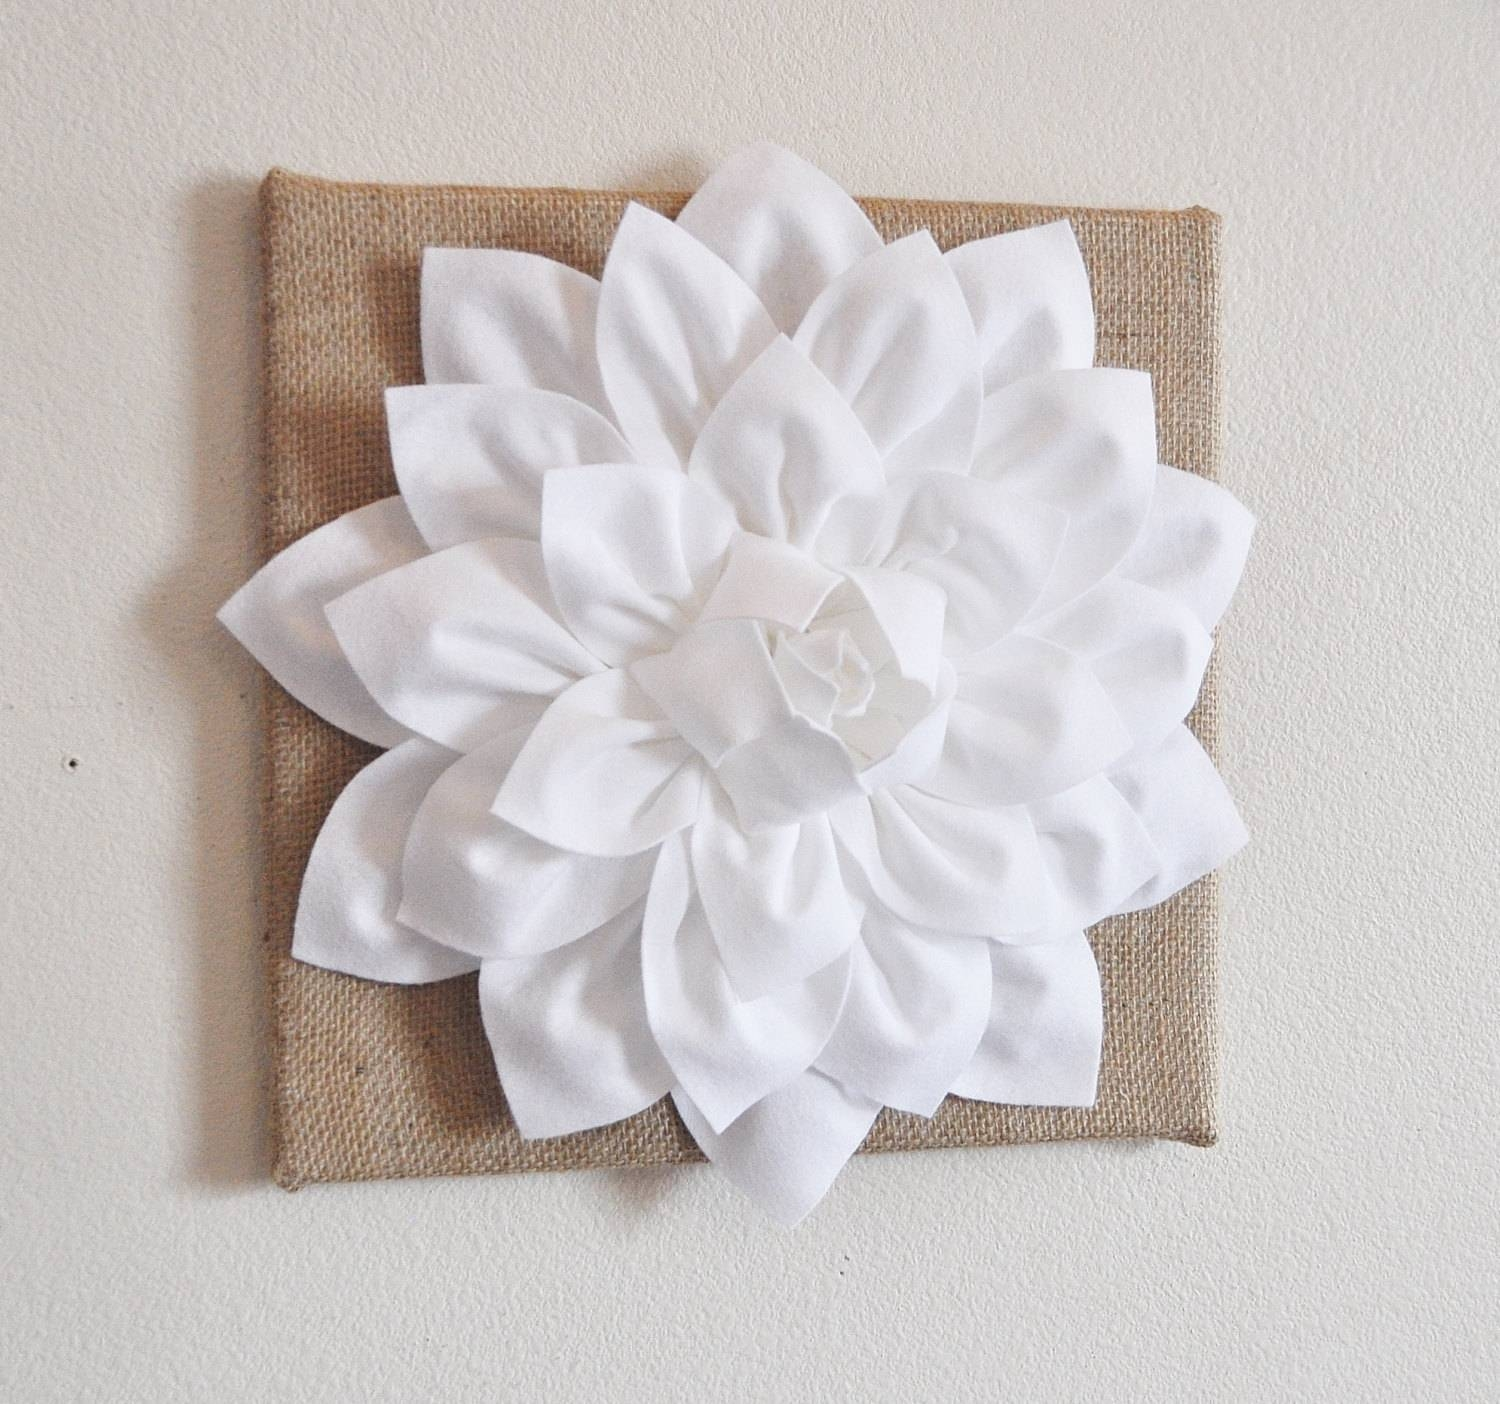 Wall Flower White Dahlia On Burlap 12 X12 Canvas Wall In Current White 3d Wall Art (View 3 of 20)